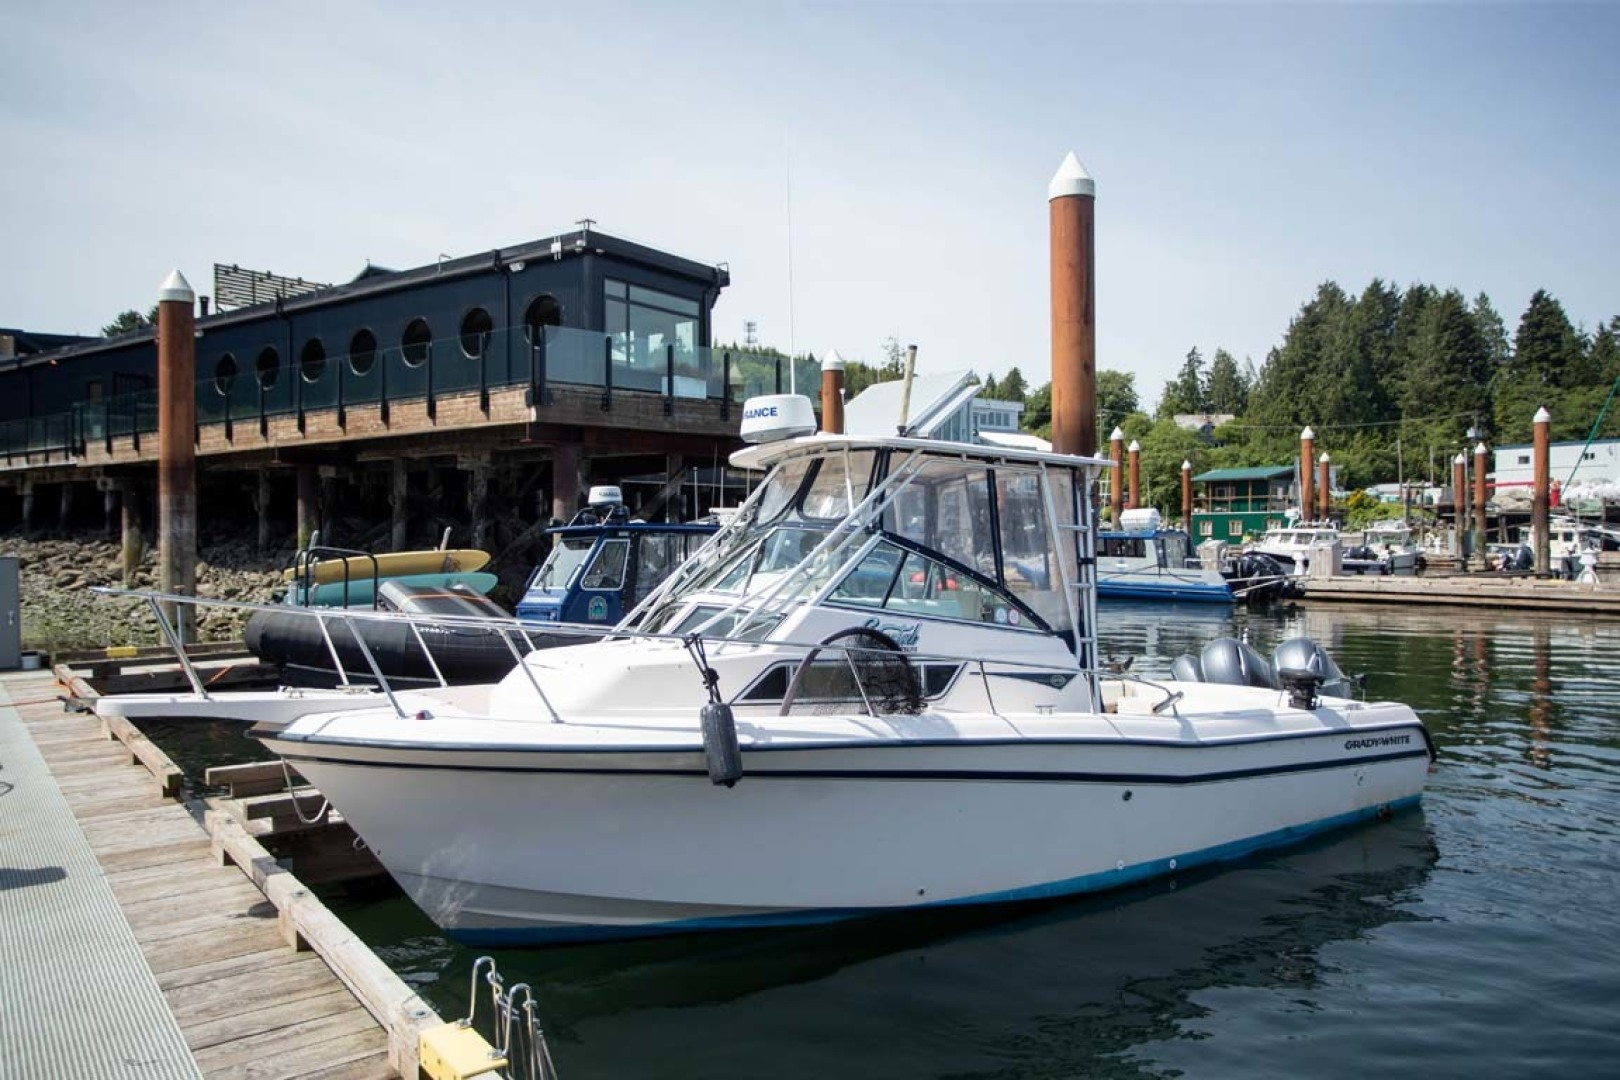 is a Grady-White 272 Sailfish WA Yacht For Sale in Vancouver, BC-Main Profile-0